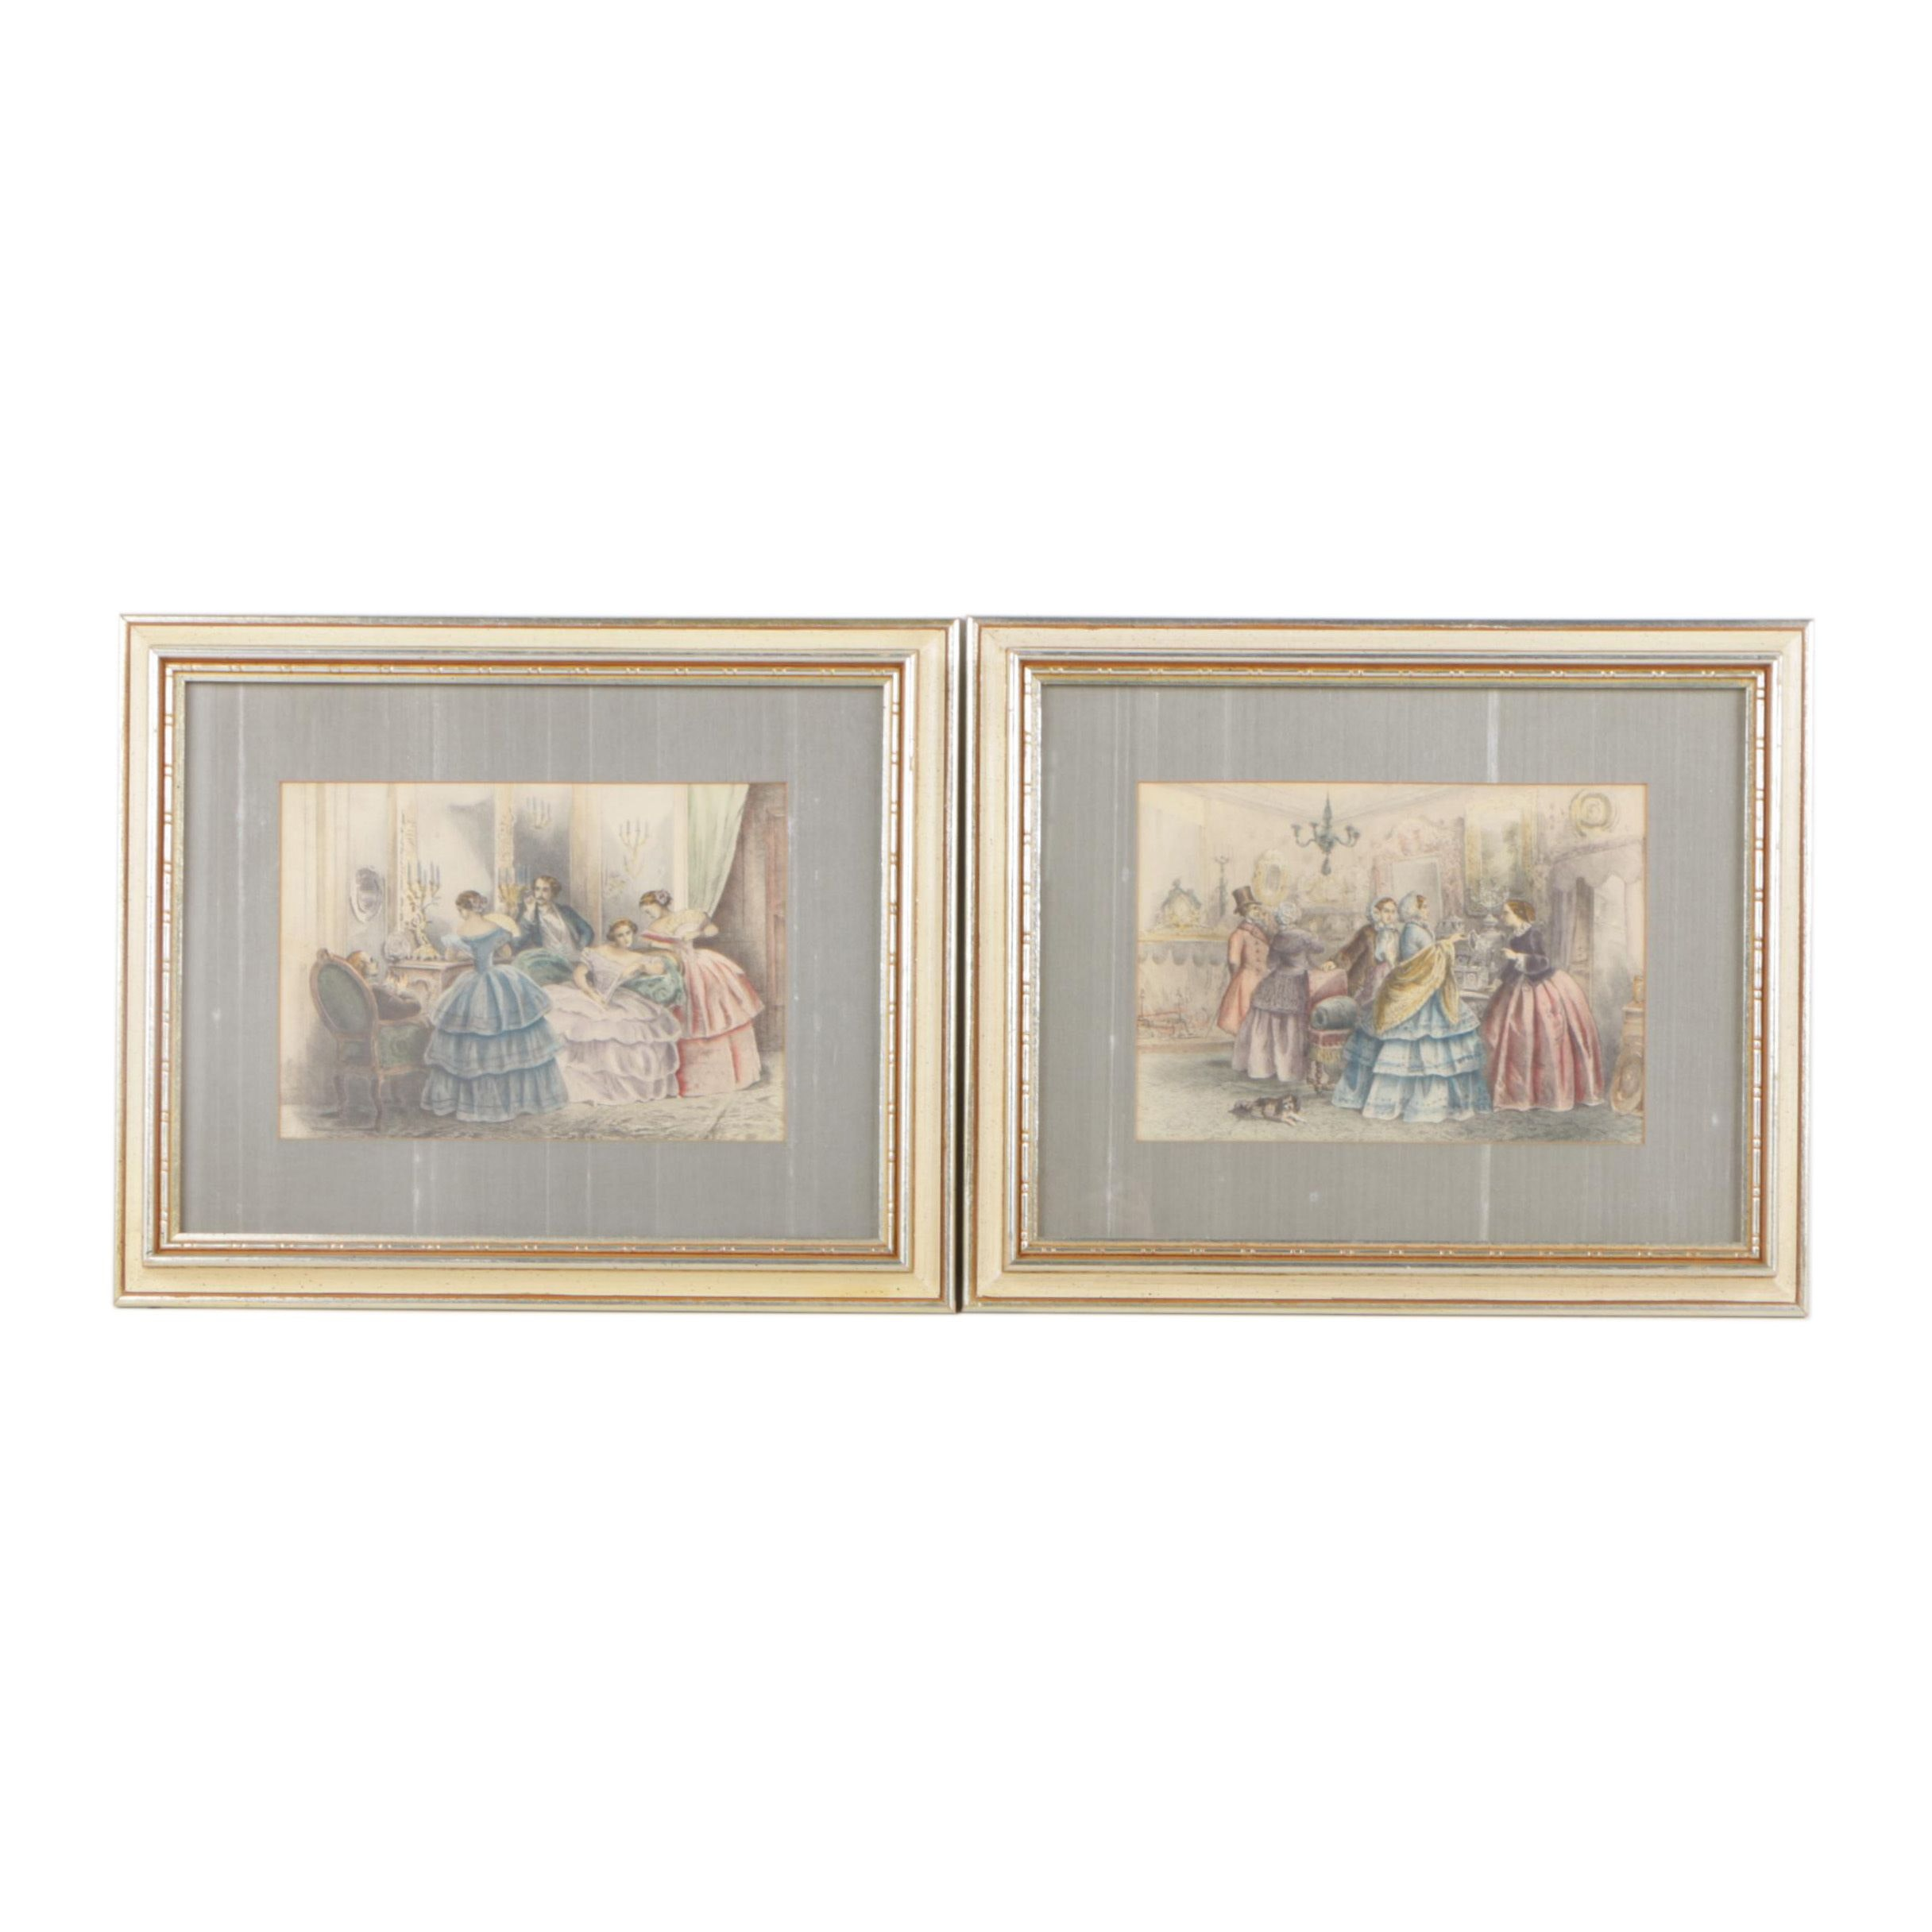 Hand Colored Halftone Prints After 19th Century Fashion Plates